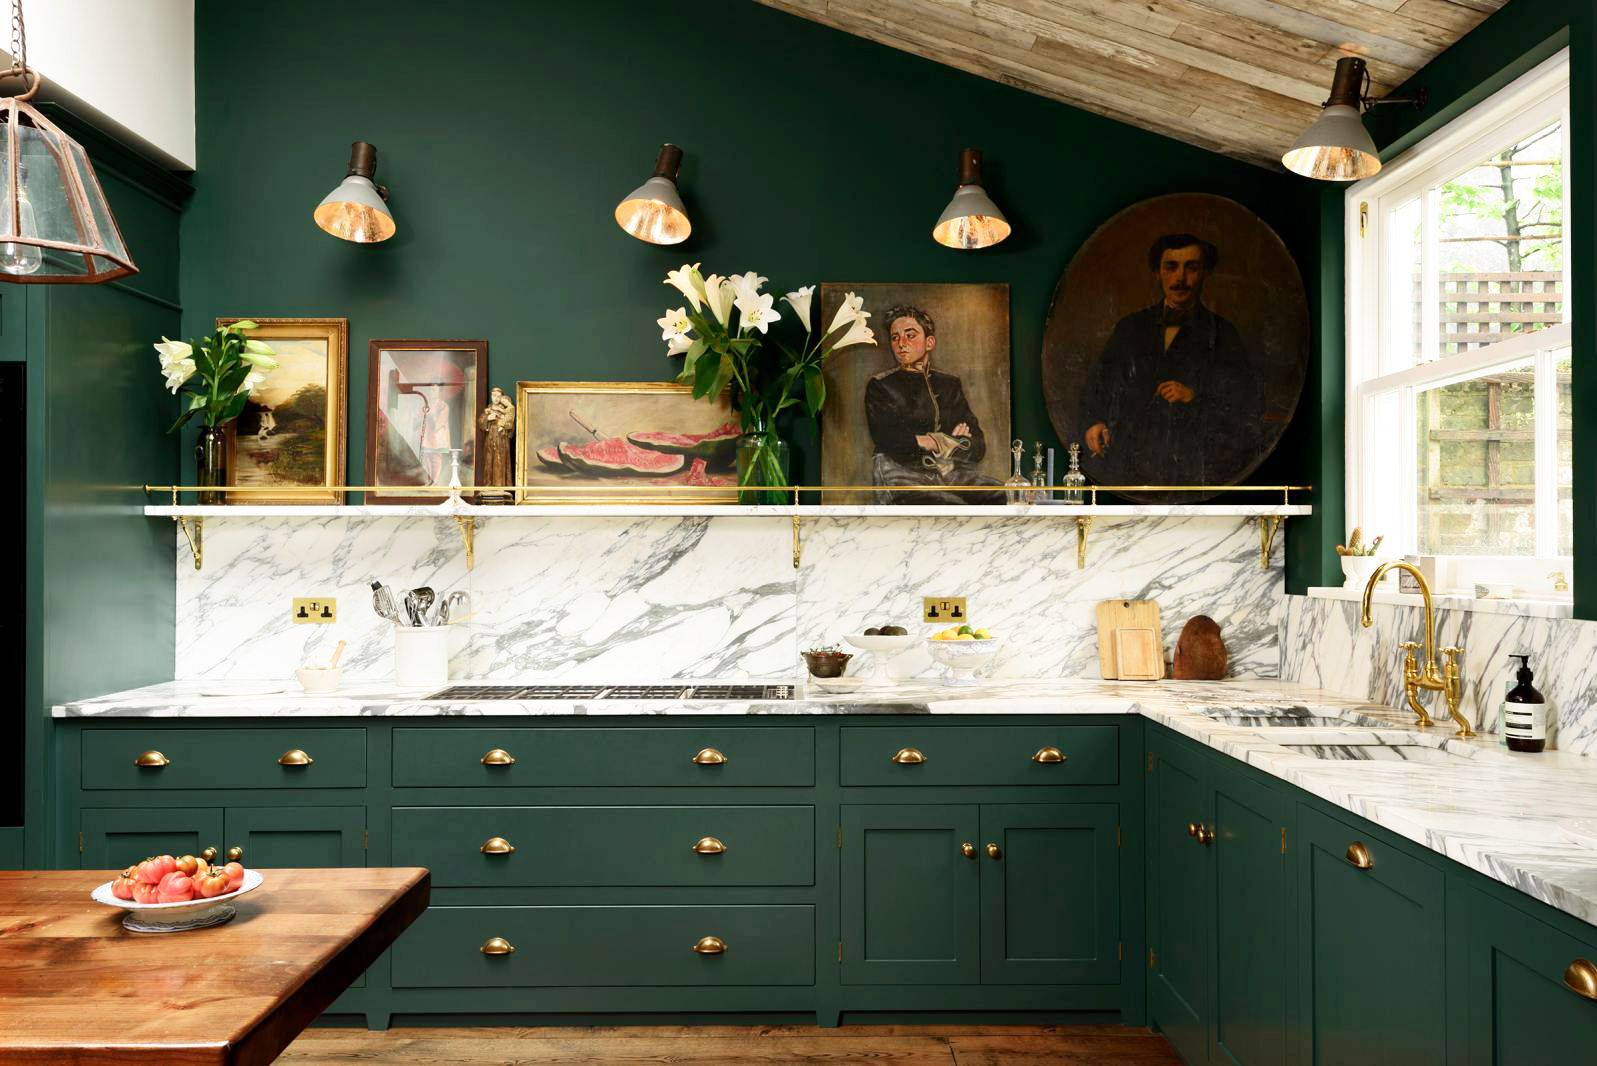 85 Kitchens That'll Make You Want To Redo Yours